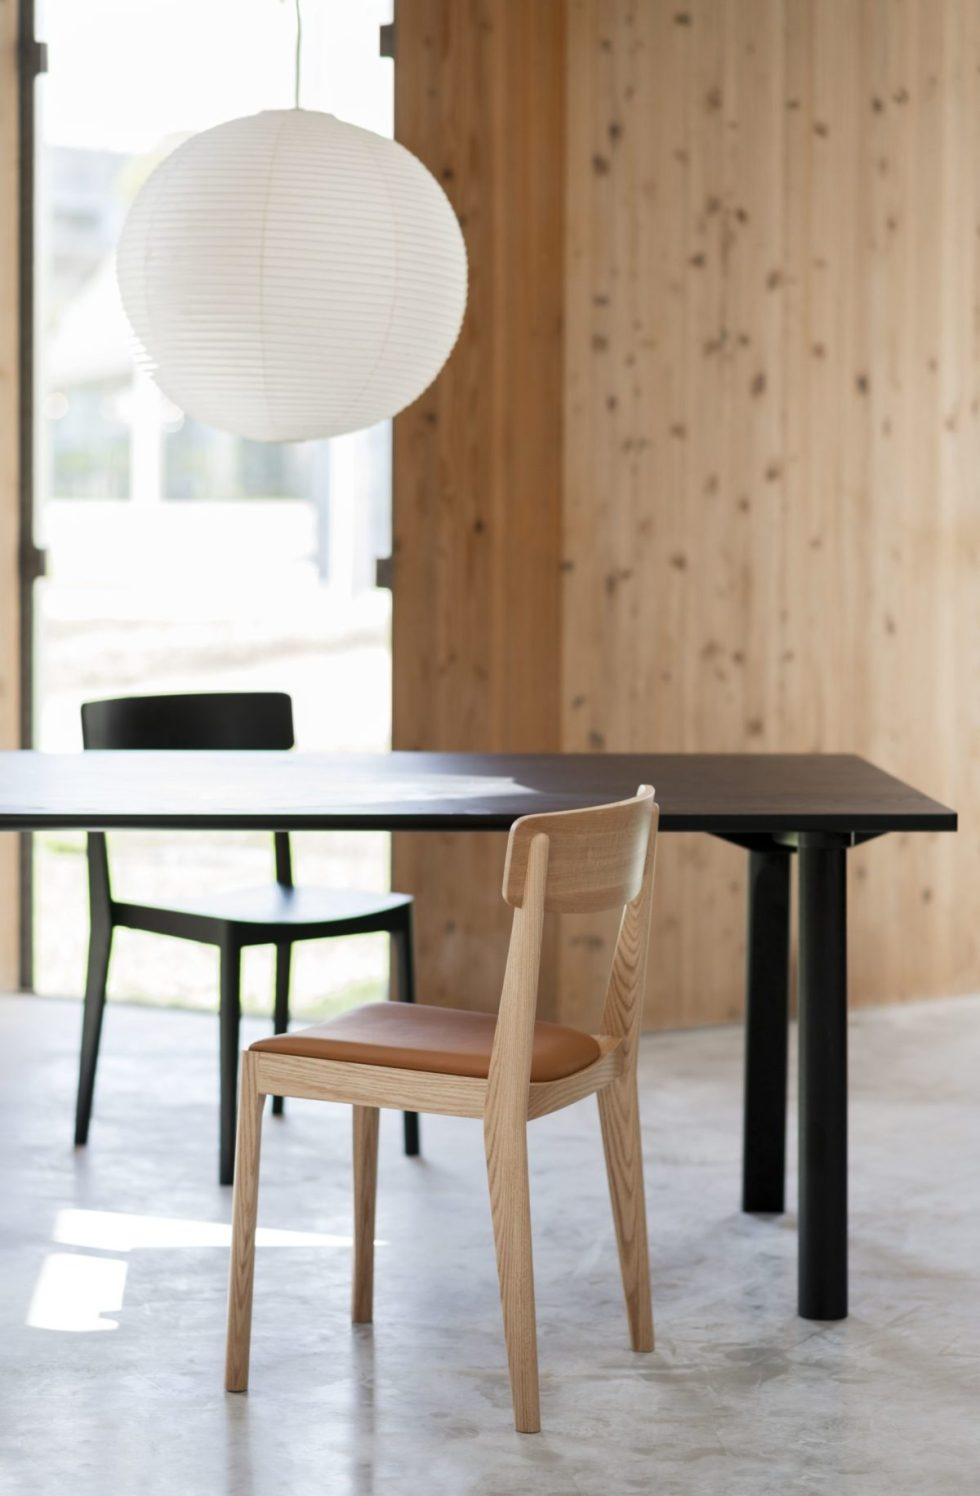 kadai table with ariake chairs diffrent colors and fabrics